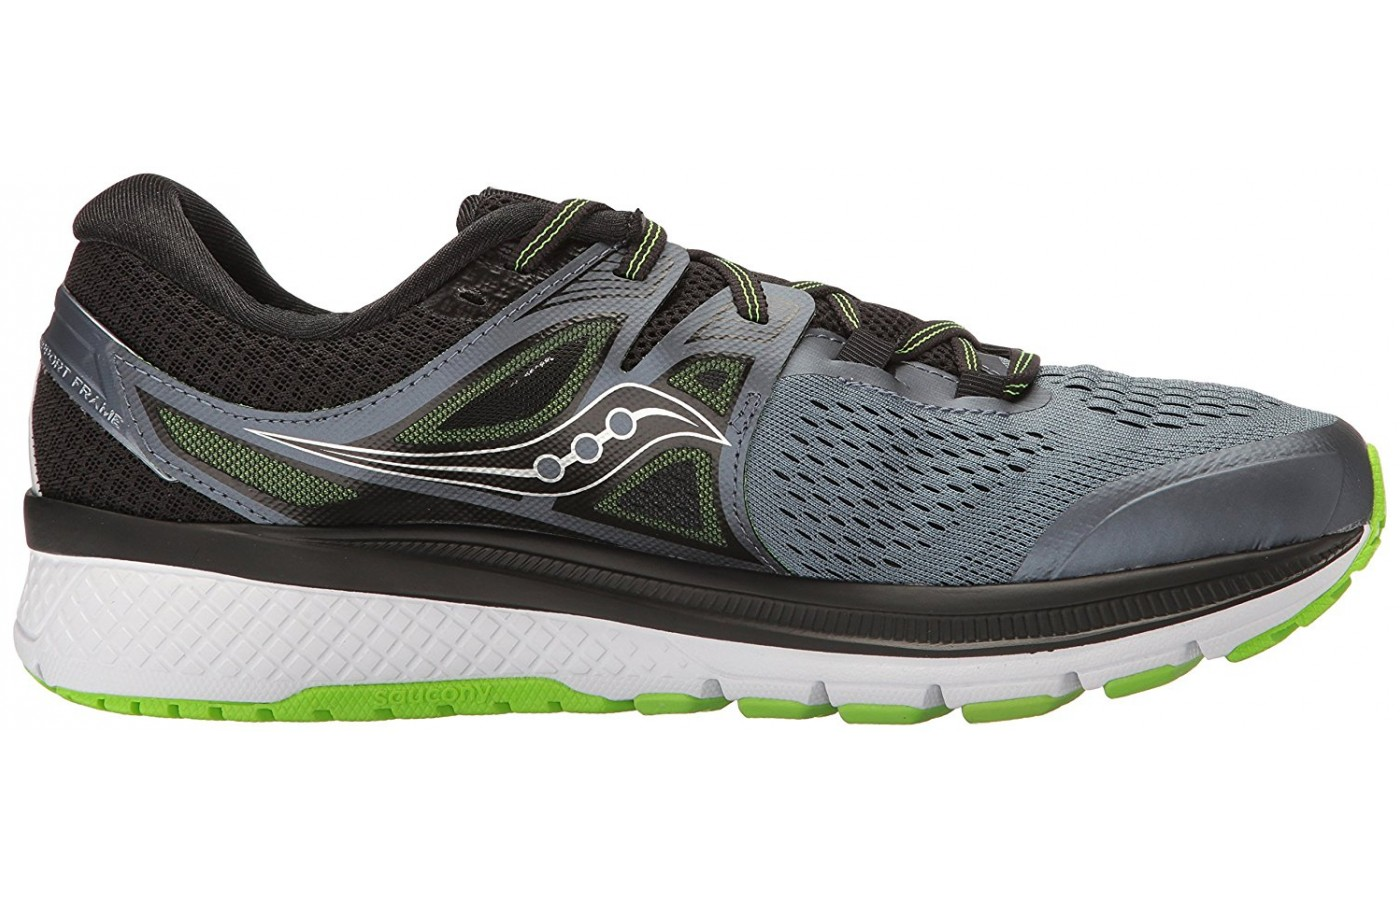 Saucony side